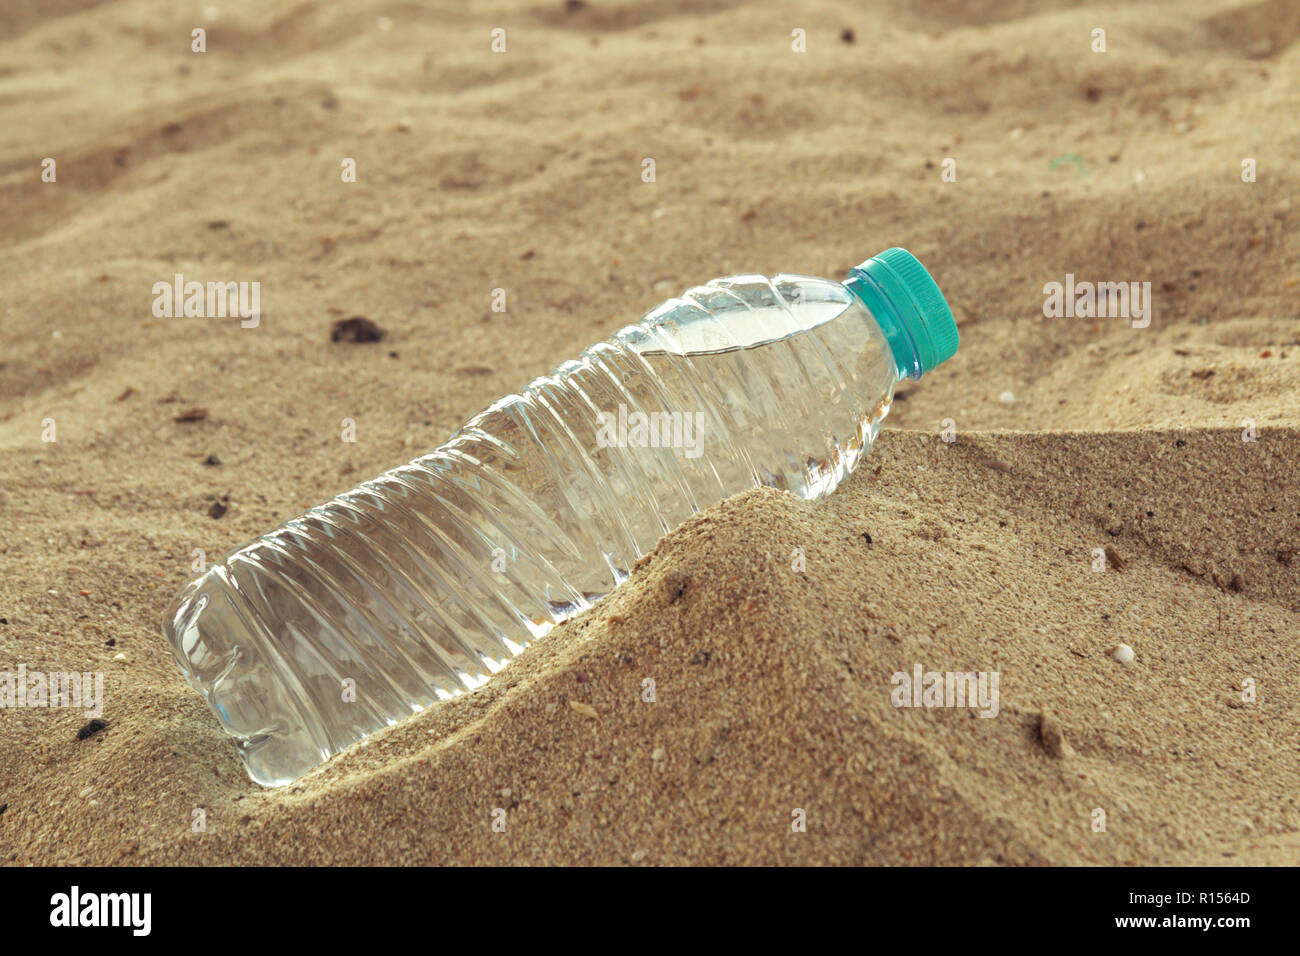 Bottle of clean drinking water in a dry desert, copy space. - Stock Image